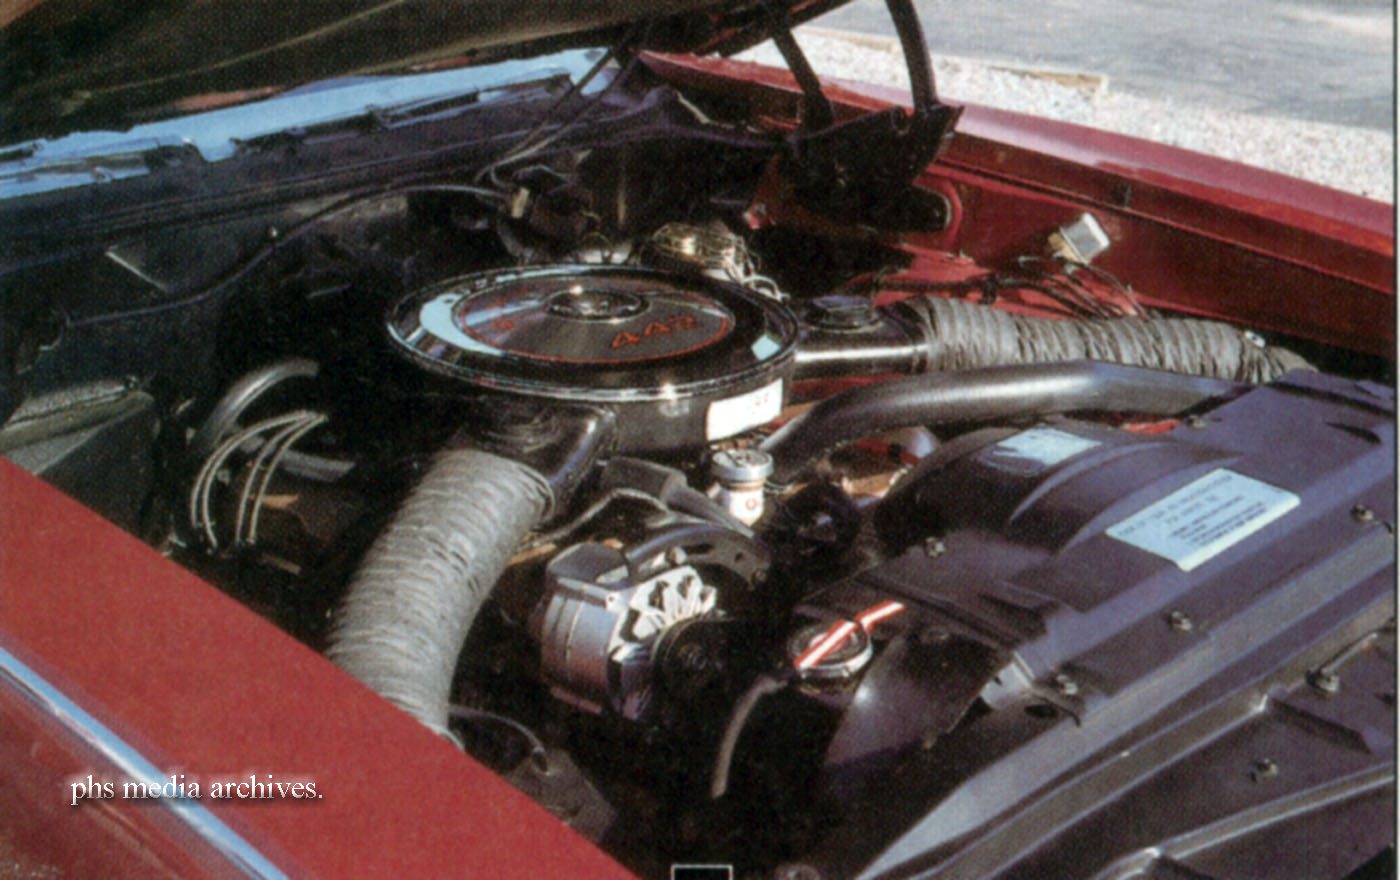 1968 was the last year for under the bumper ram air induction. This W30 car  sports the set up.